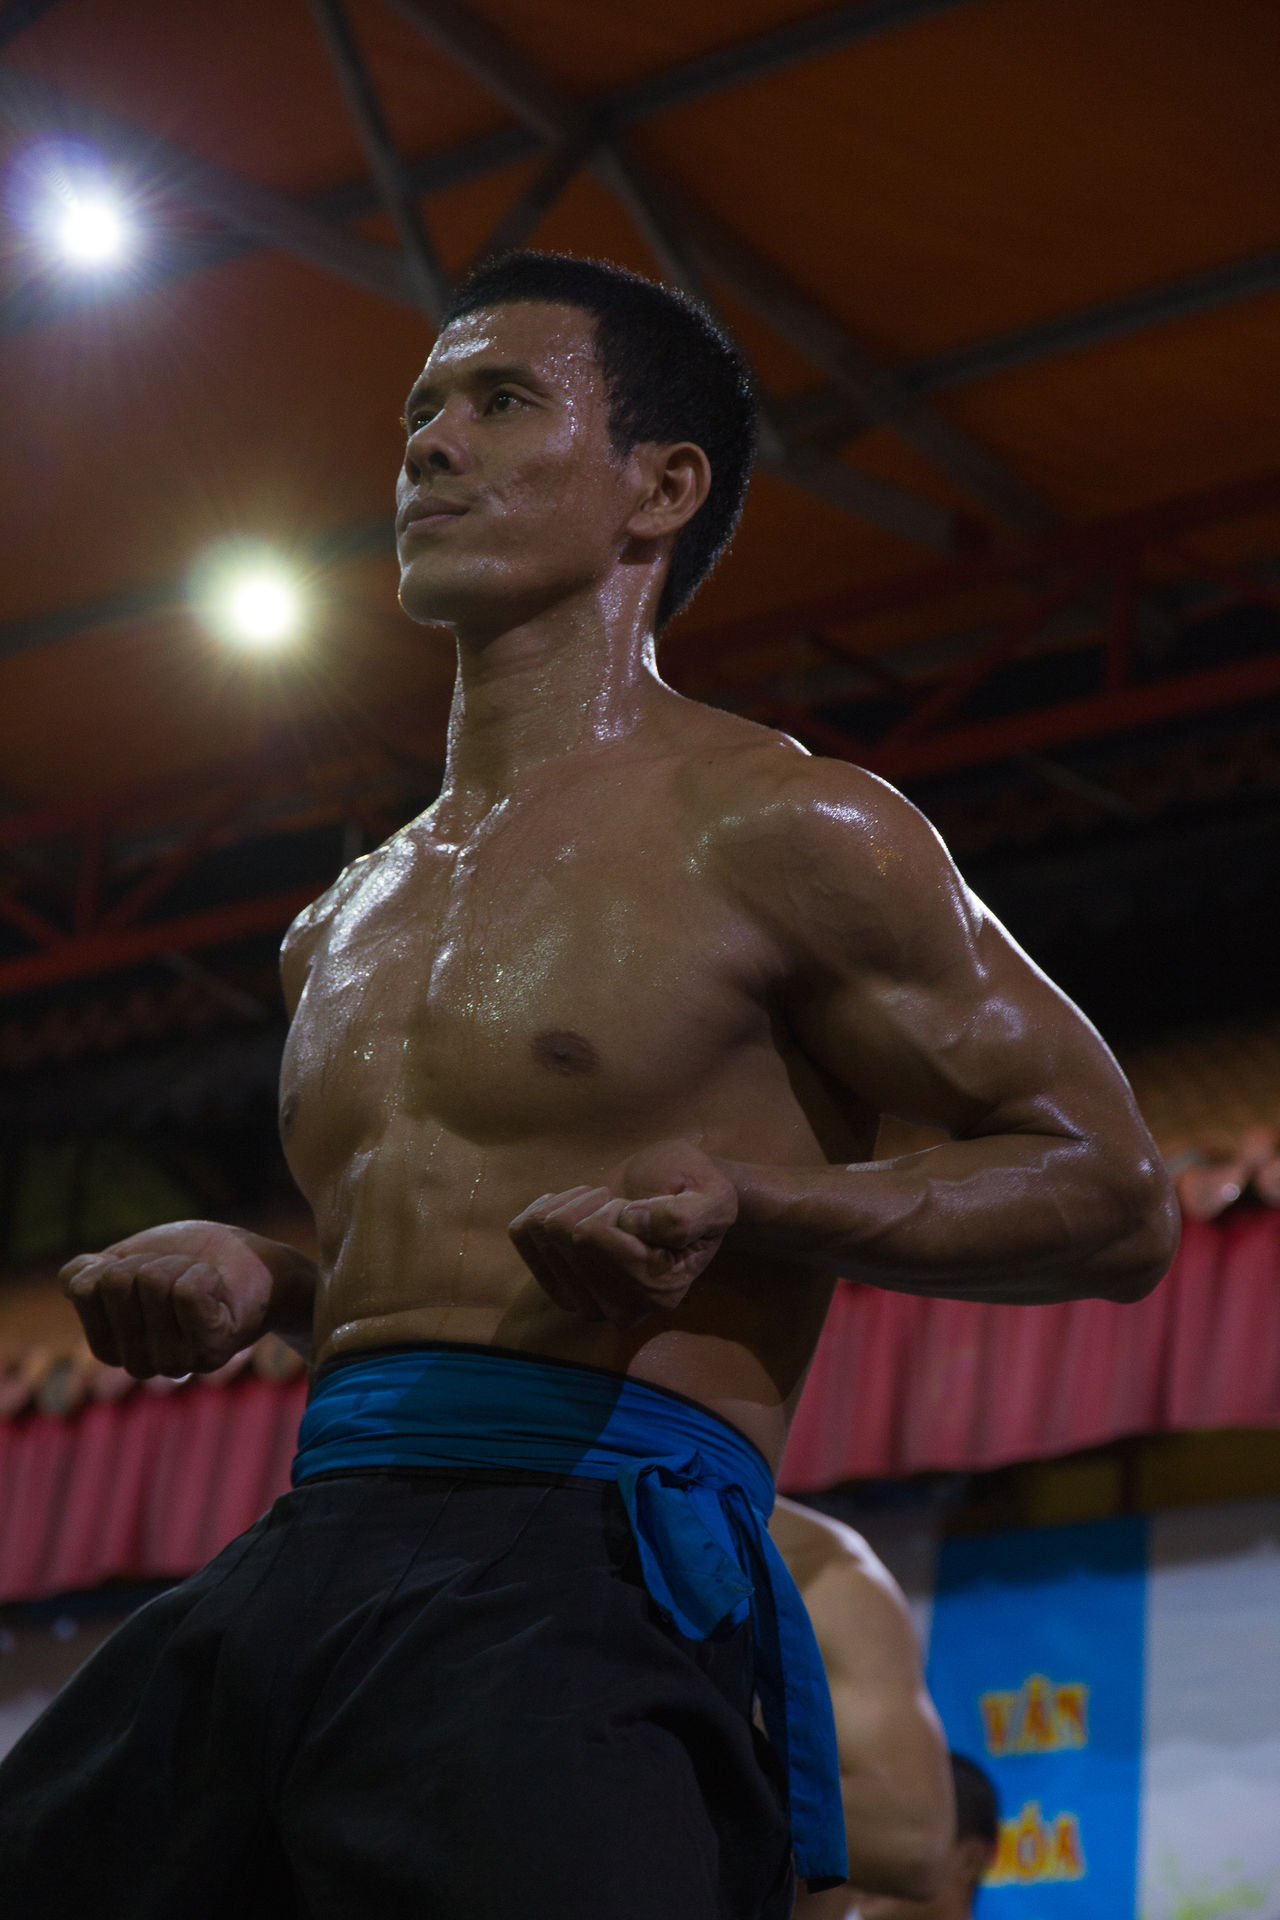 A level-up contestant of traditional Vietnam kungfu Adult Athlete Determination Exercising Healthy Lifestyle Indoors  Kungfu  Muscular Build Night Nightphotography One Person Practise Self Improvement Sport Sportsman Vietnam Vietnamese Young Adult